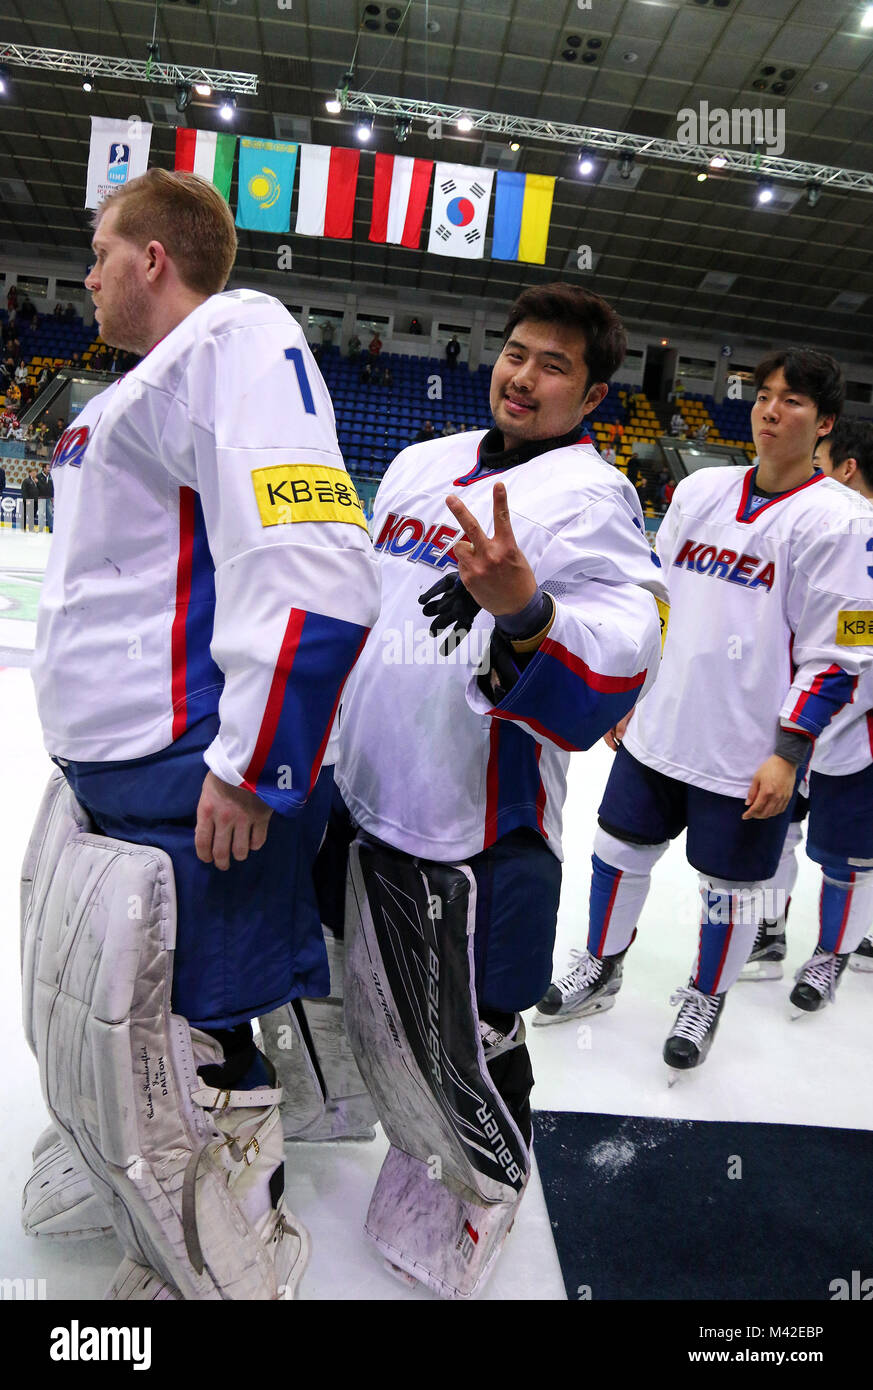 KYIV, UKRAINE - APRIL 28, 2017: Goalkeepers Matt DALTON (Left) and Sungje PARK of South Korea smile after IIHF 2017 - Stock Image